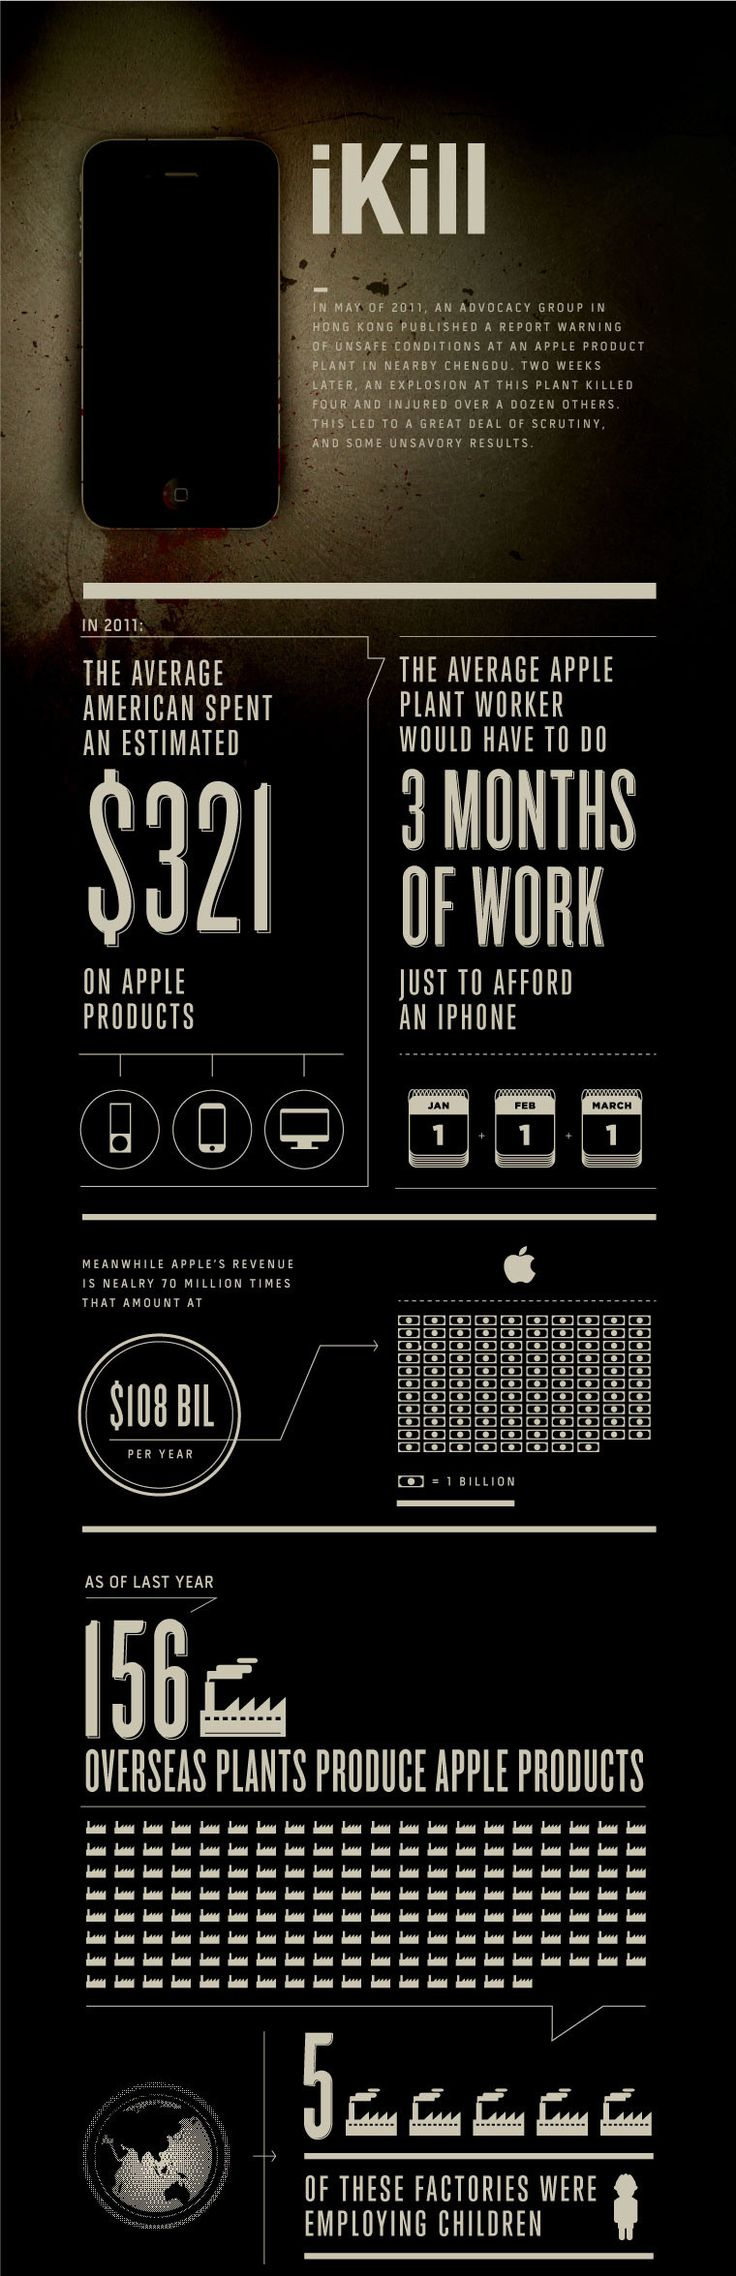 The death toll of manufacturing an apple product